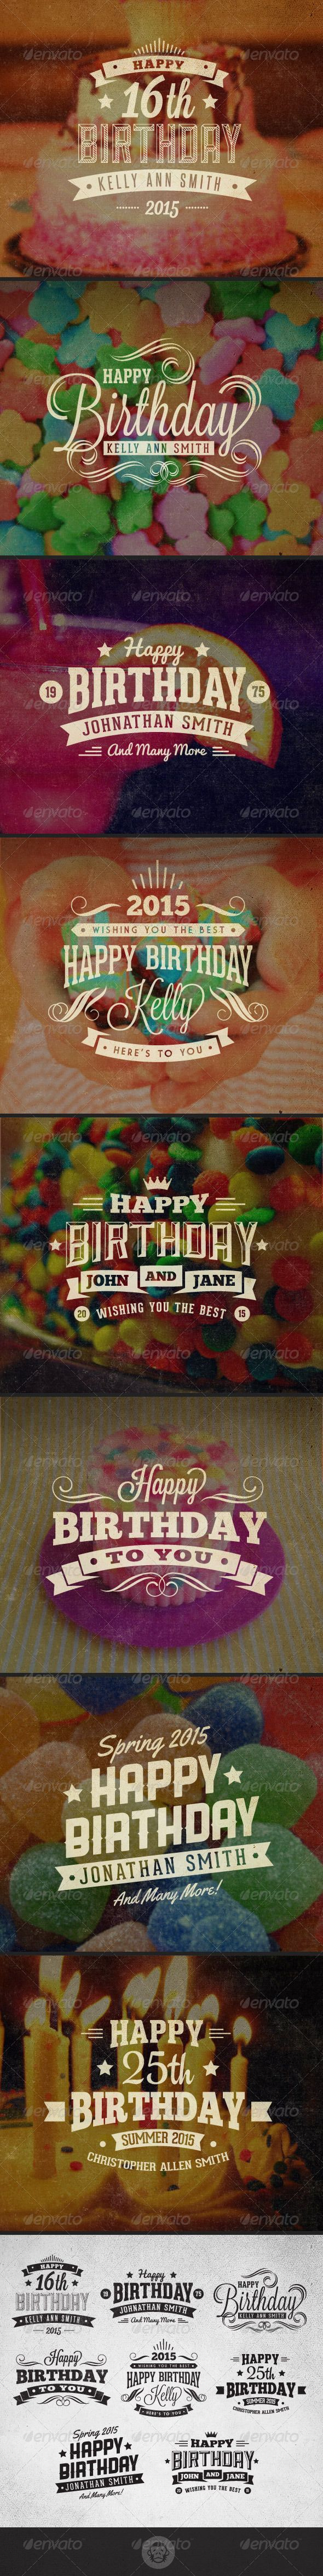 Vintage Labels and Badges - Happy Birthday - Badges & Stickers Web Elements